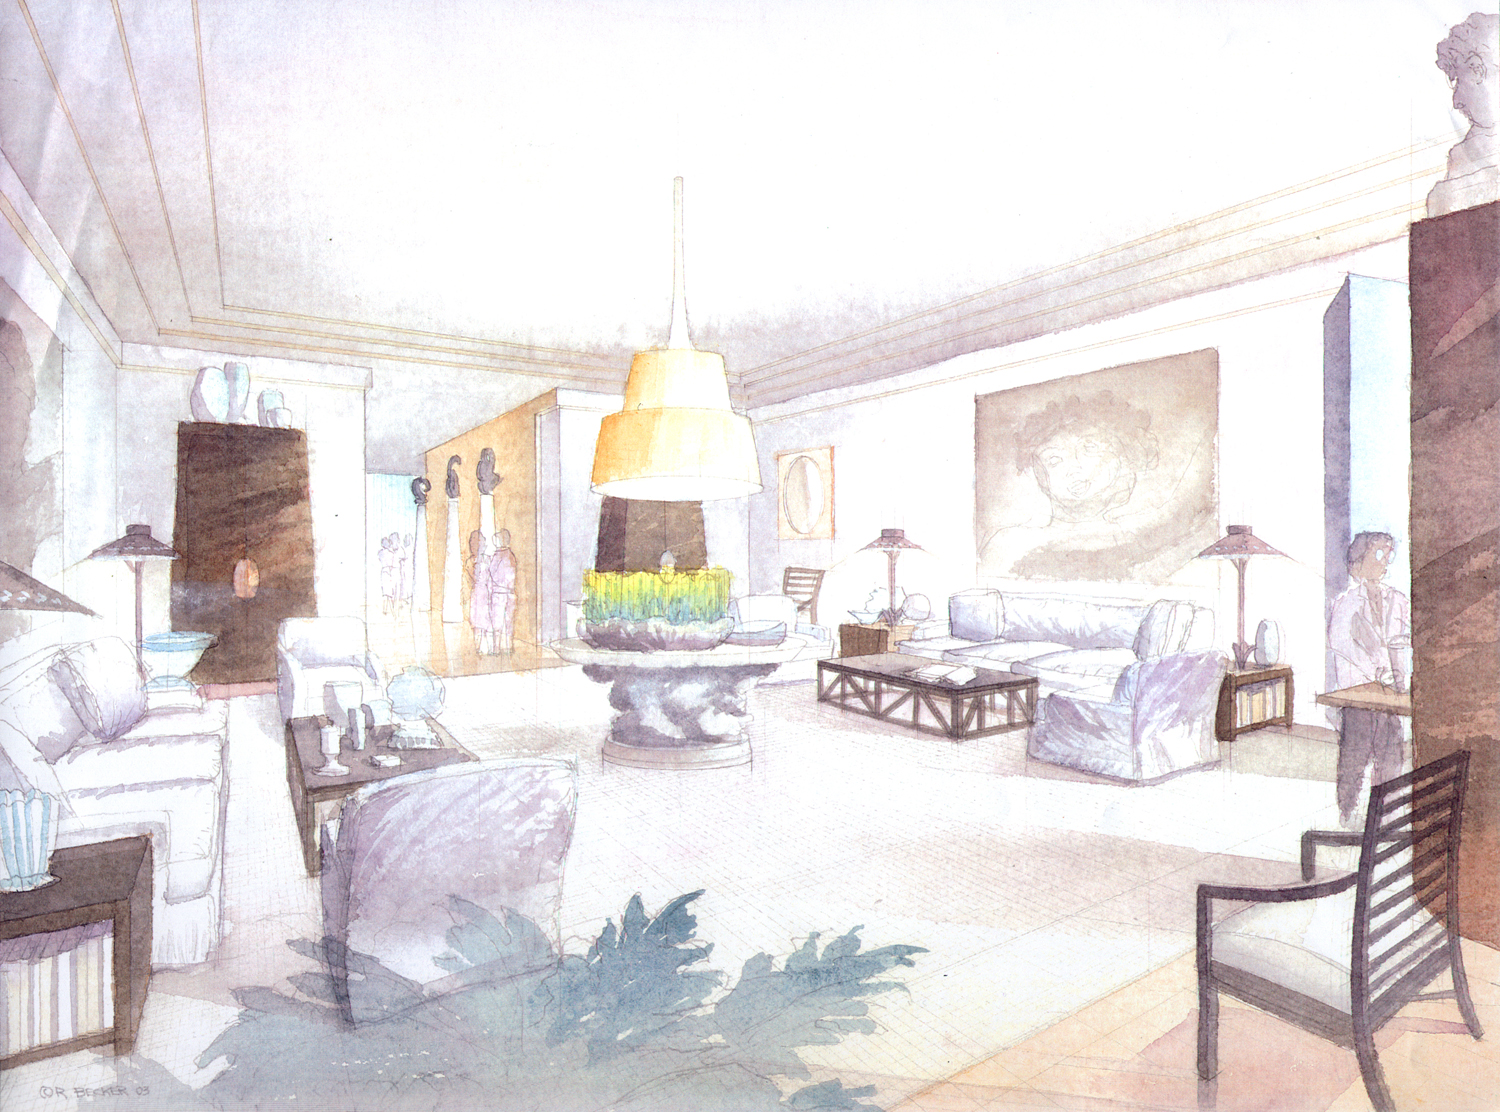 ODA one central park watercolor rendering